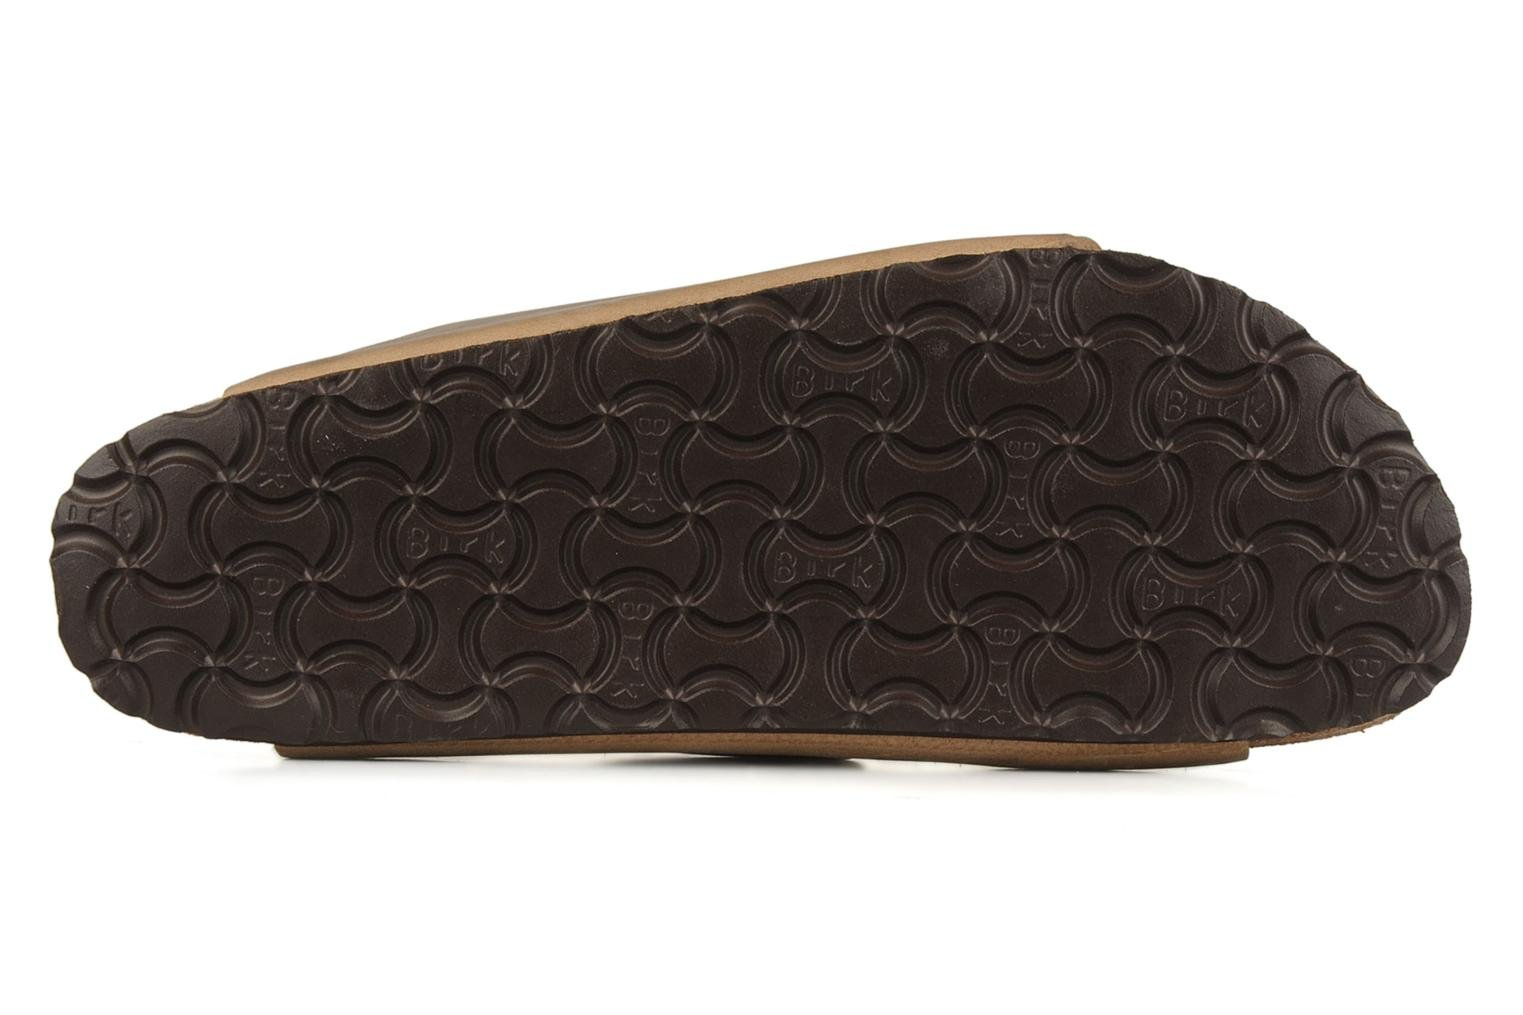 Arizona Cuir M Tabacco brown